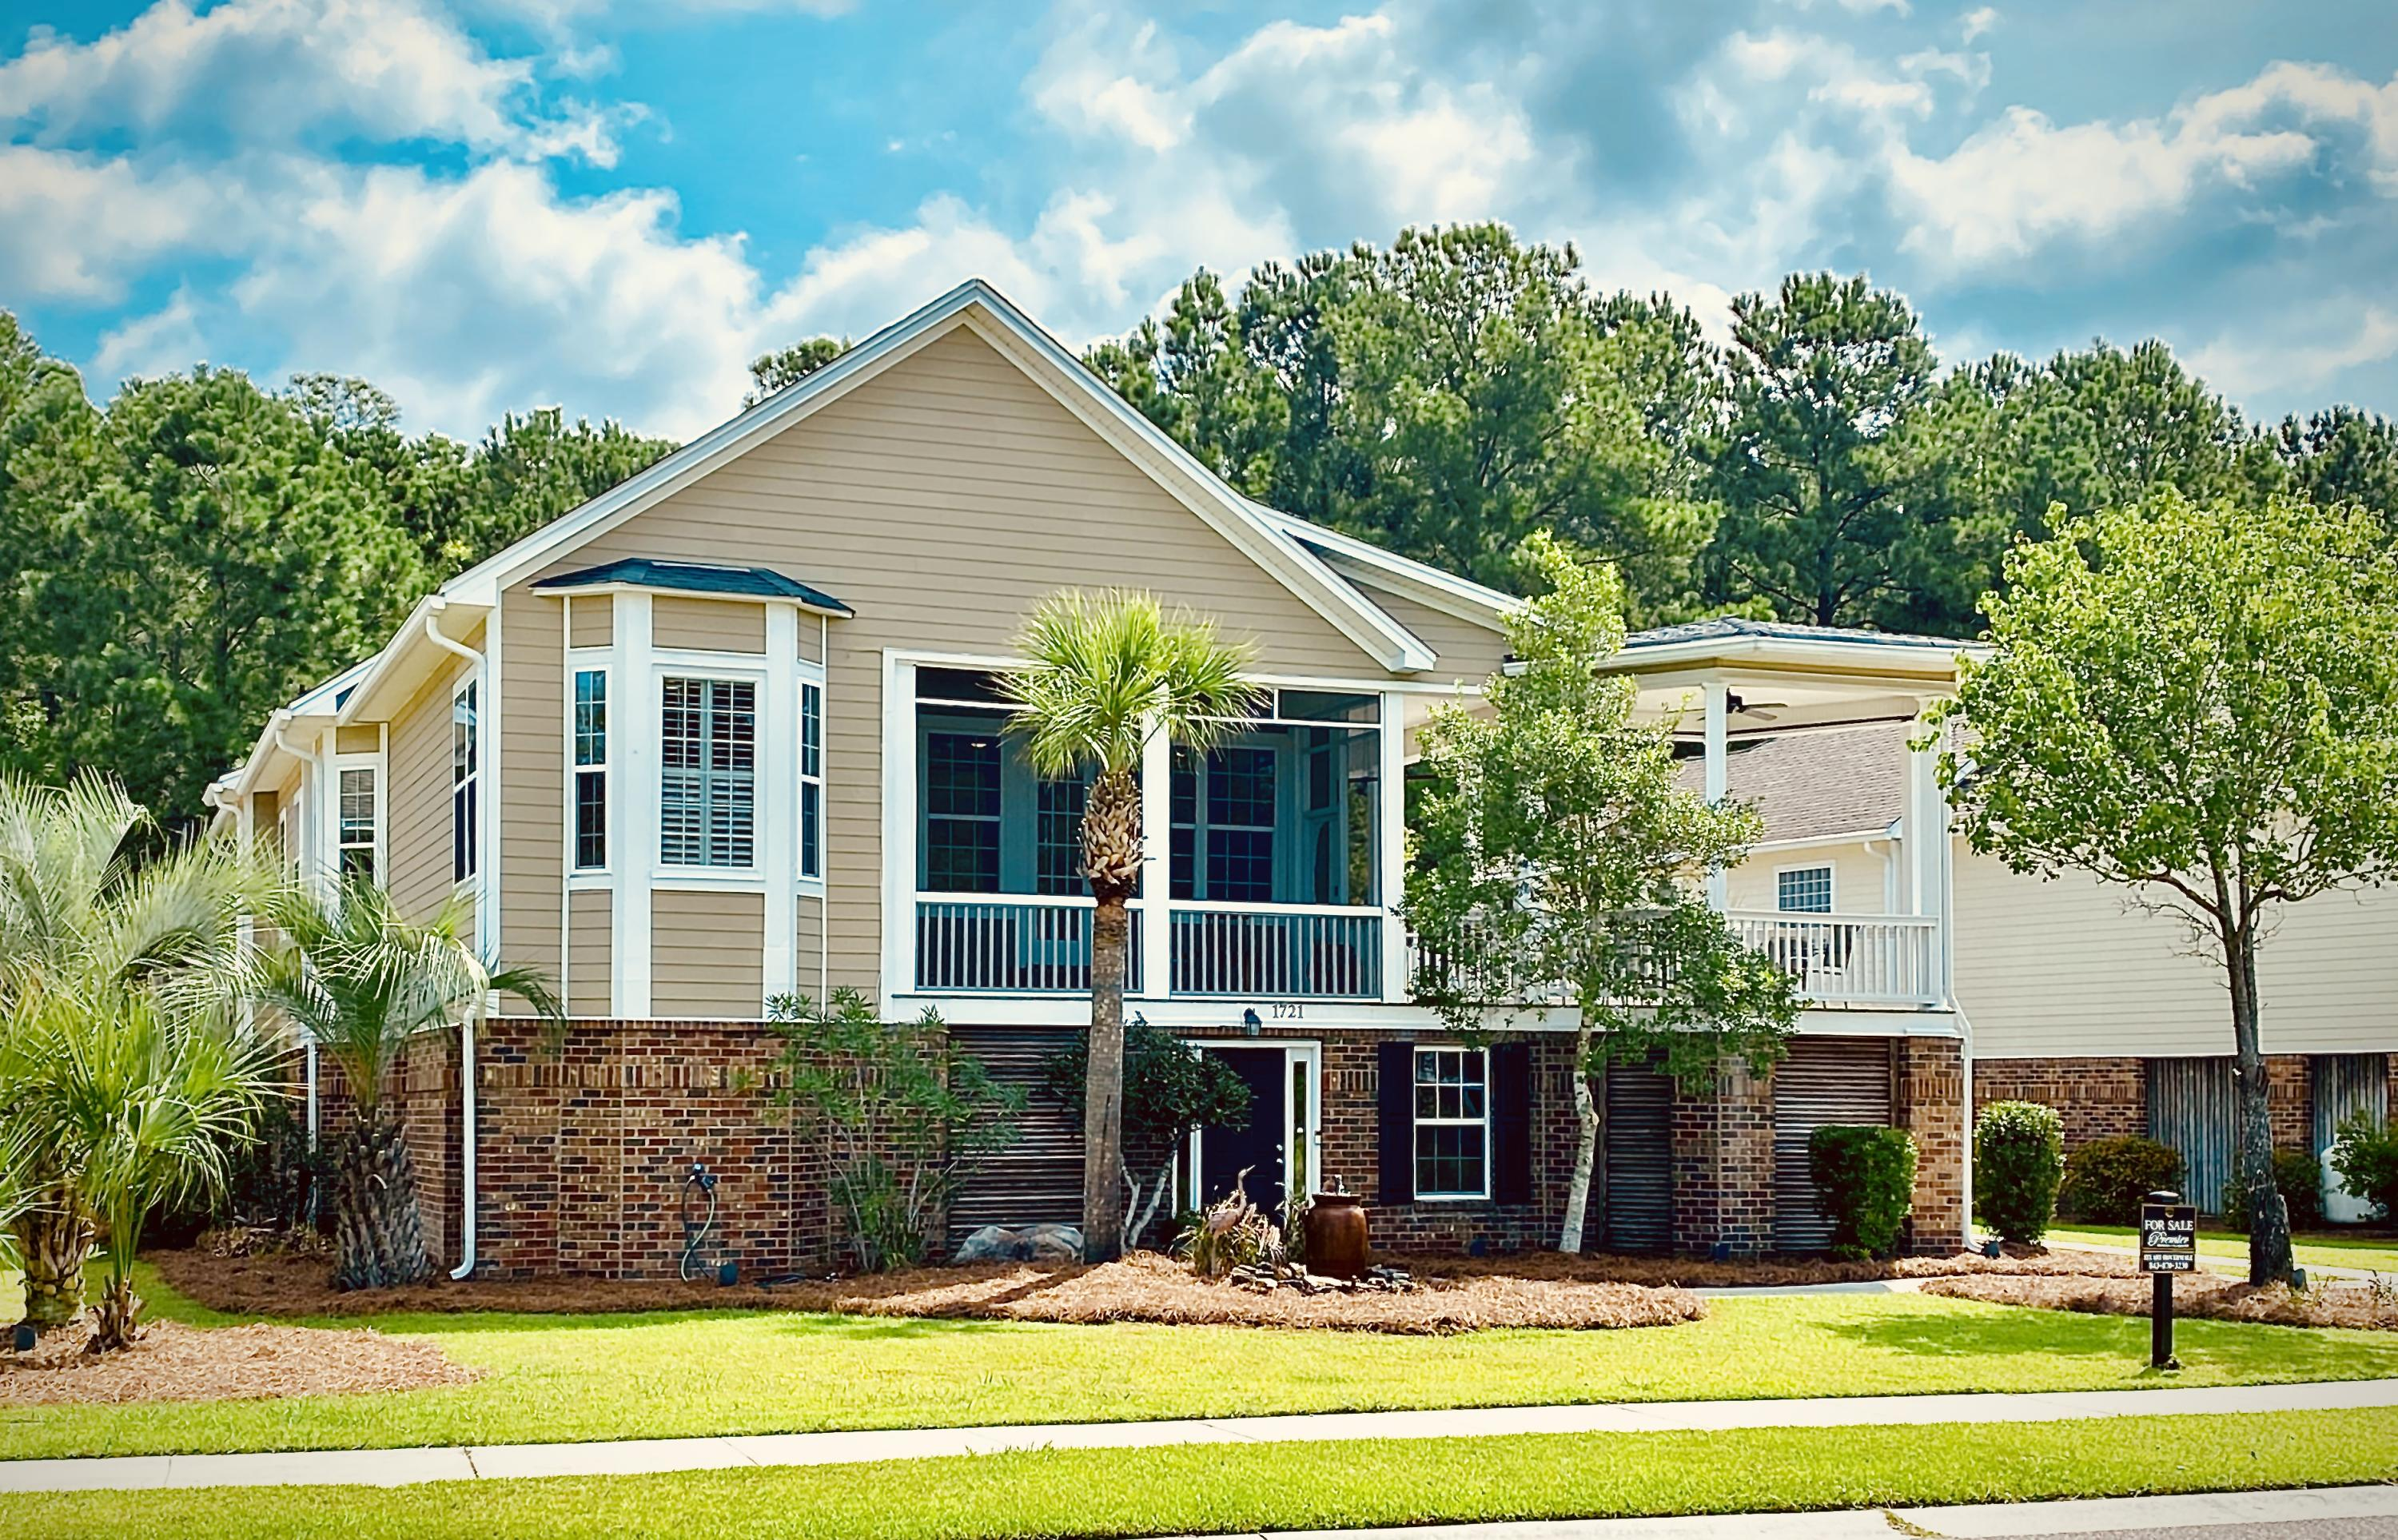 Rivertowne Country Club Homes For Sale - 1721 Rivertowne Country Club, Mount Pleasant, SC - 27